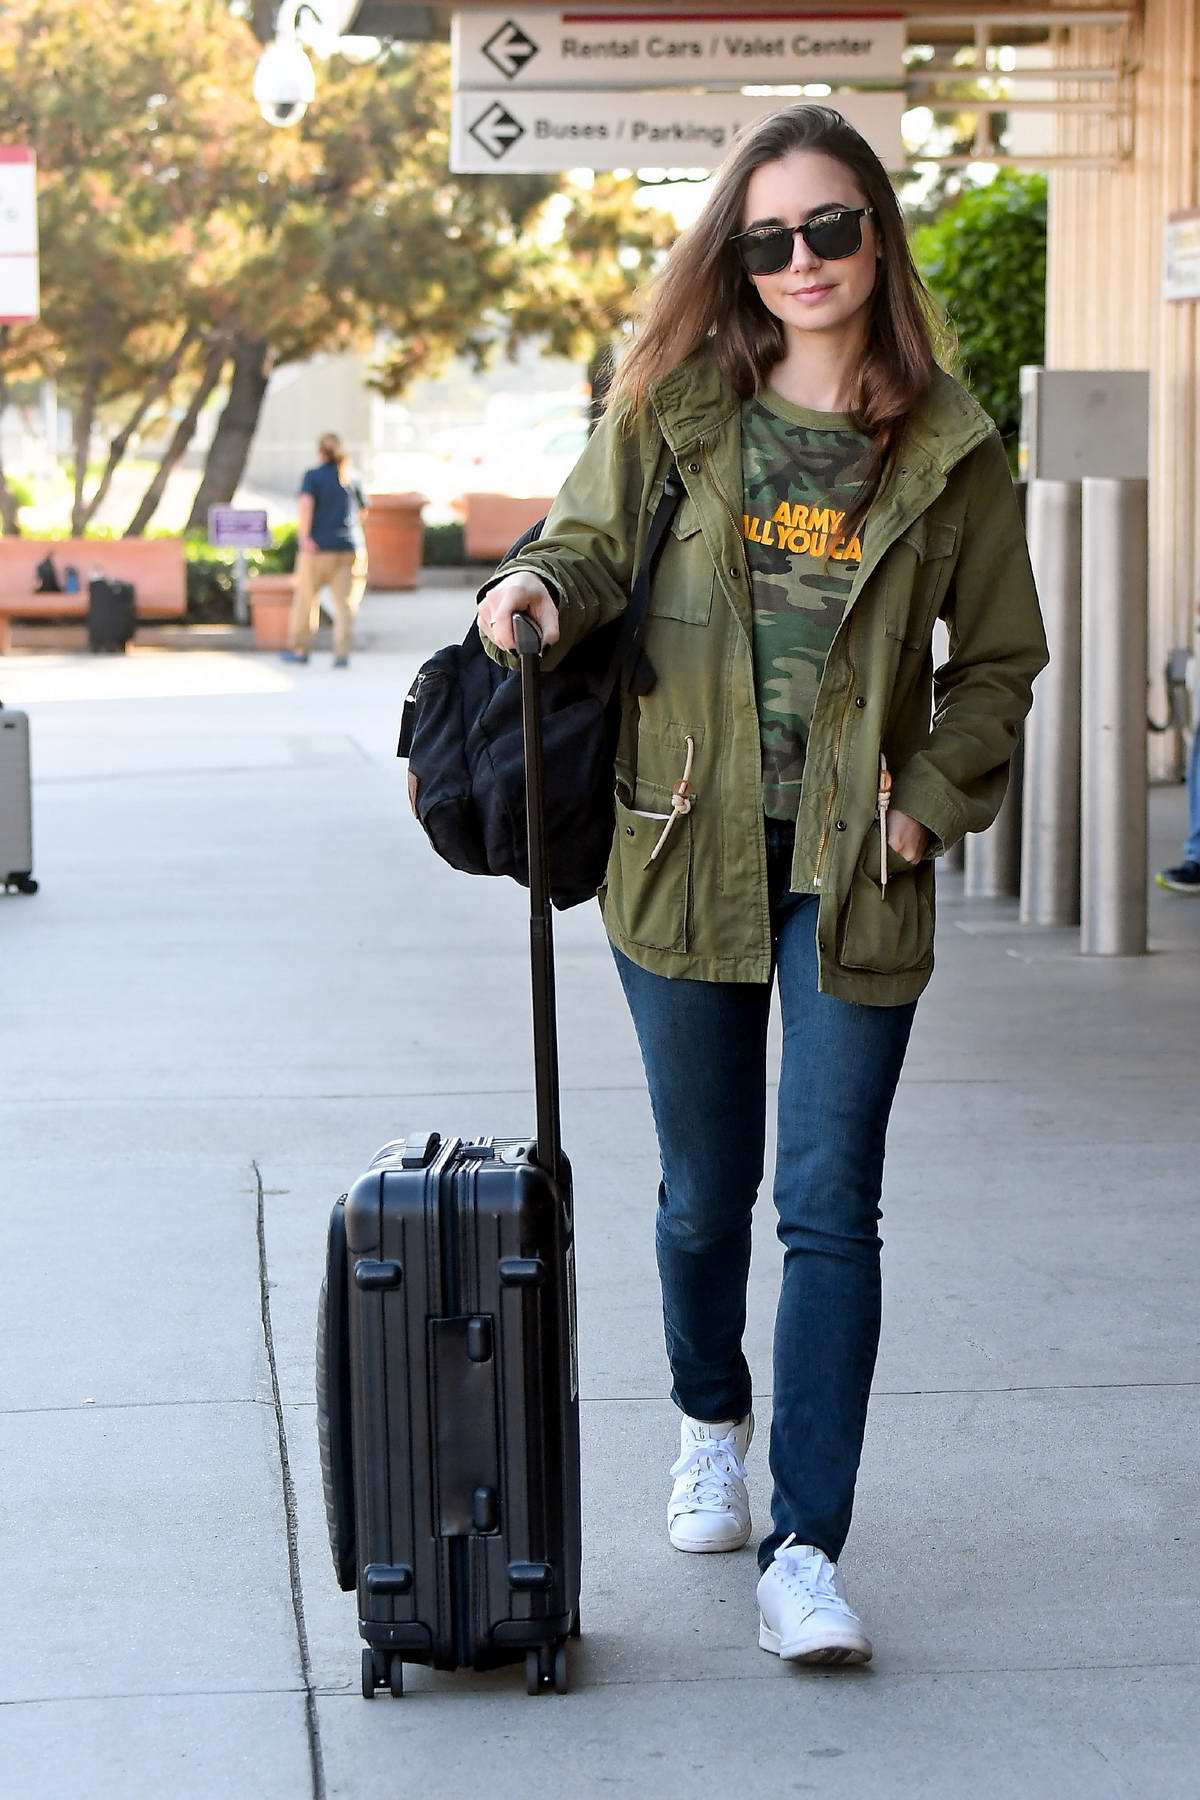 Lily Collins spotted in an olive green jacket and jeans as she arrives at Burbank airport in Los Angeles